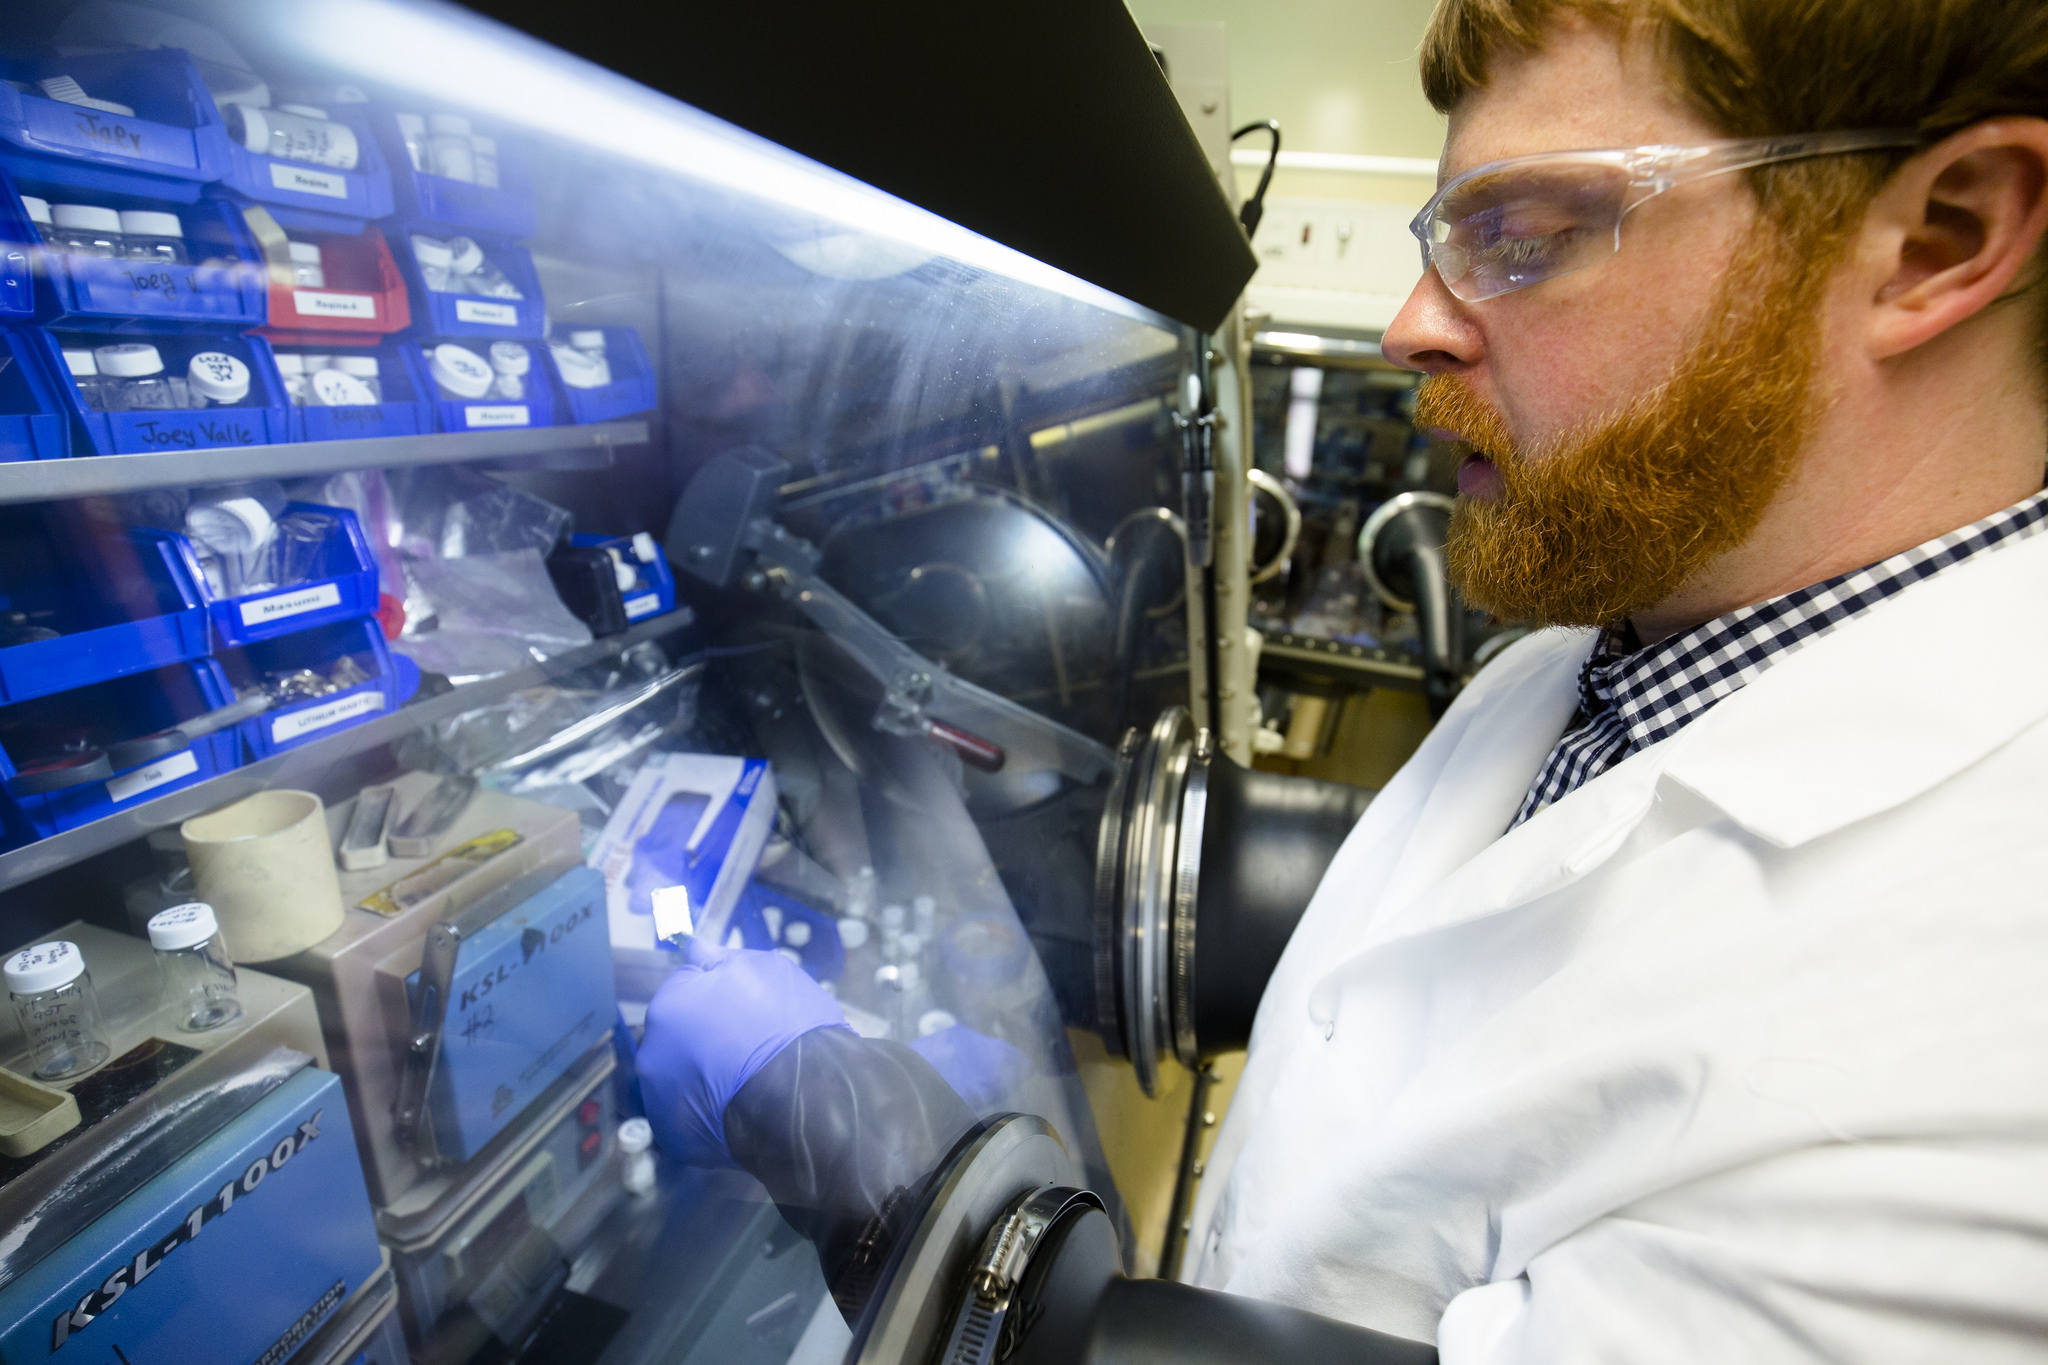 Battery Breakthrough Doubling Performance With Lithium Metal That Electrical Energy But Doesn39t Make A Complete Circuit Where Nathan Taylor Post Doctoral Fellow In Mechanical Engineering Inspects Piece Of